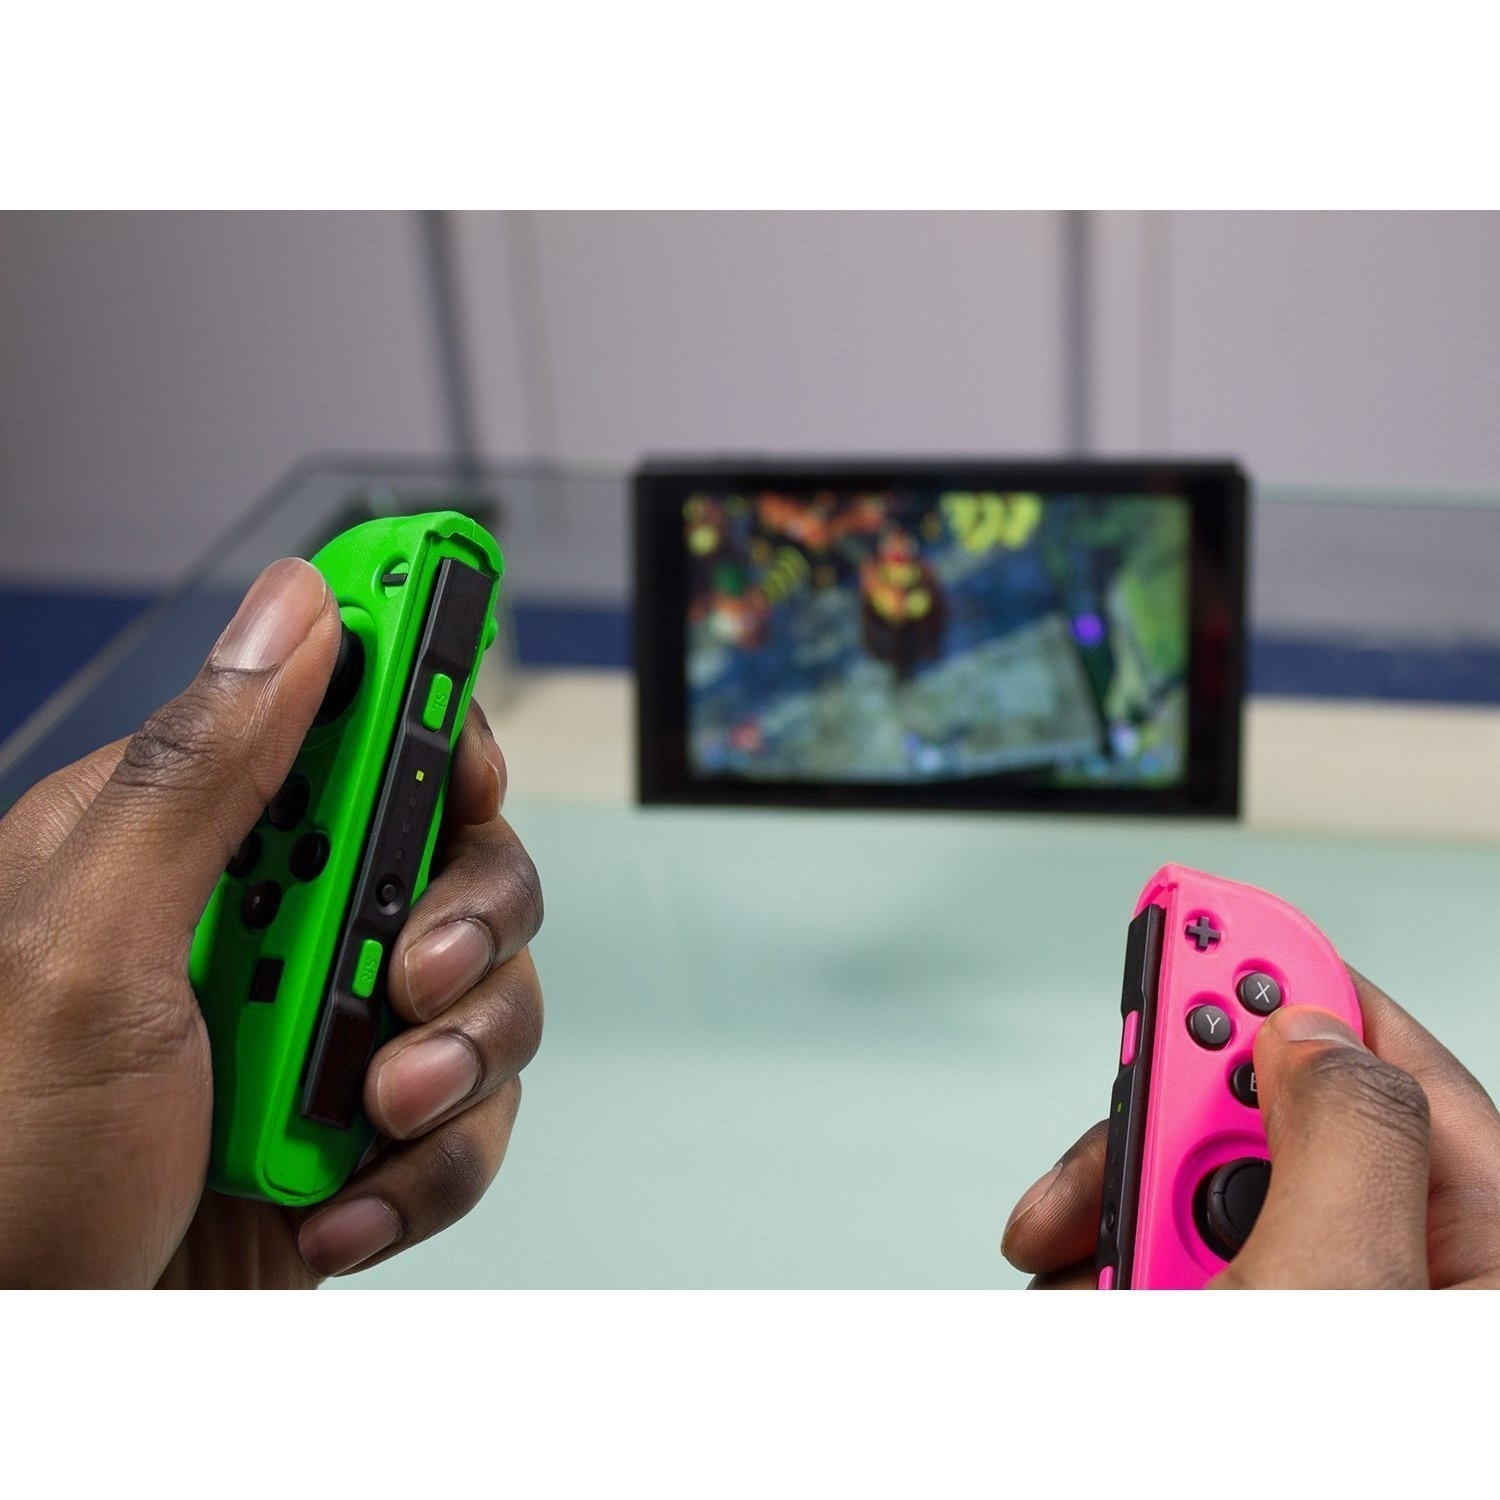 Protective Silicone Case Cover Skin for Nintendo Switch Left and Right Controllers - Green and Pink 598c89193474d733ef03c577